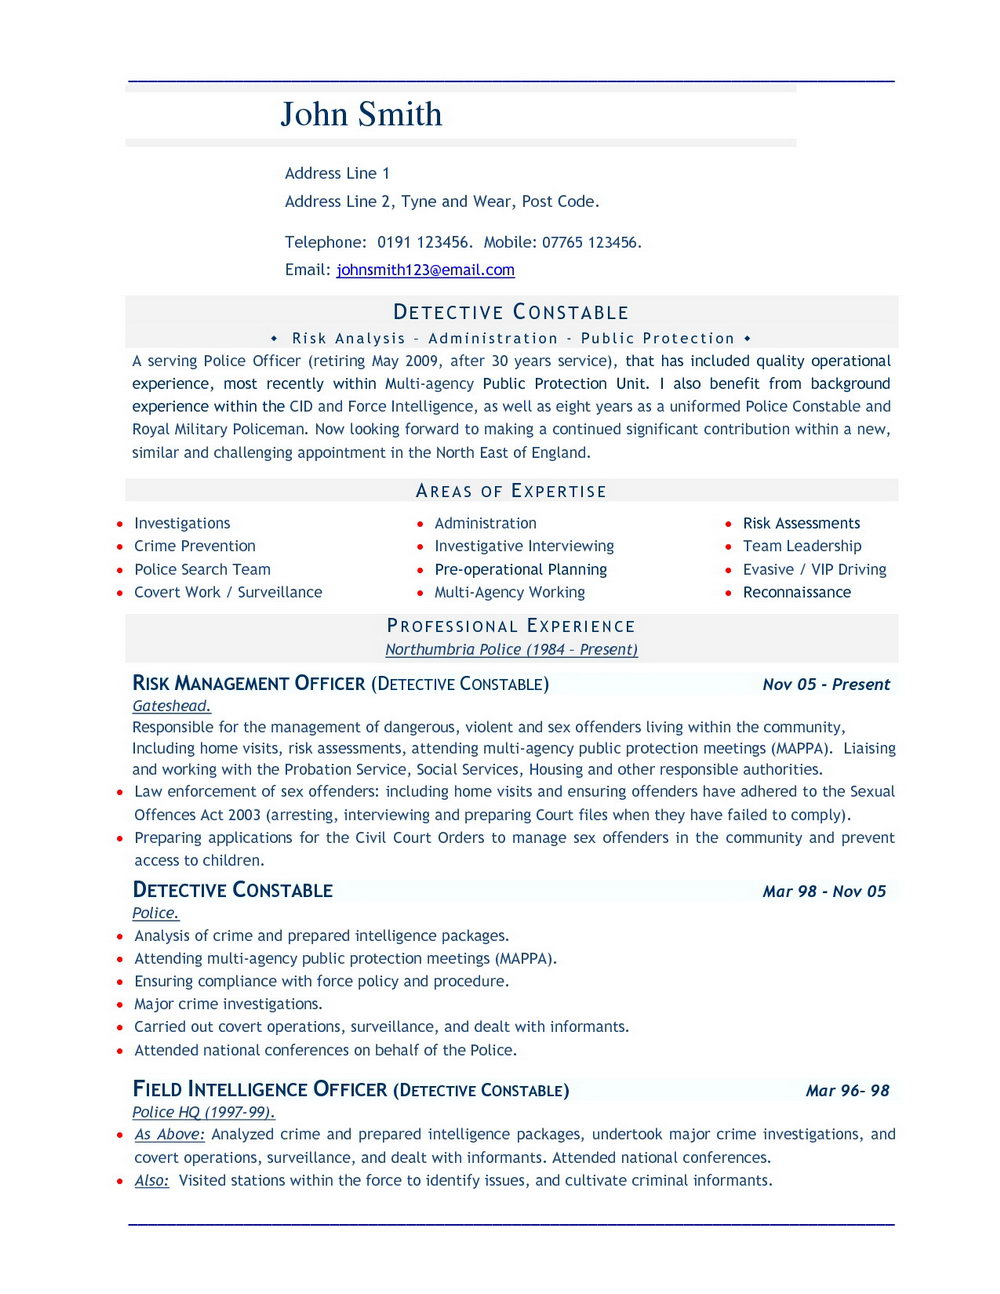 Resume Format Doc File Free Download | Universal Network